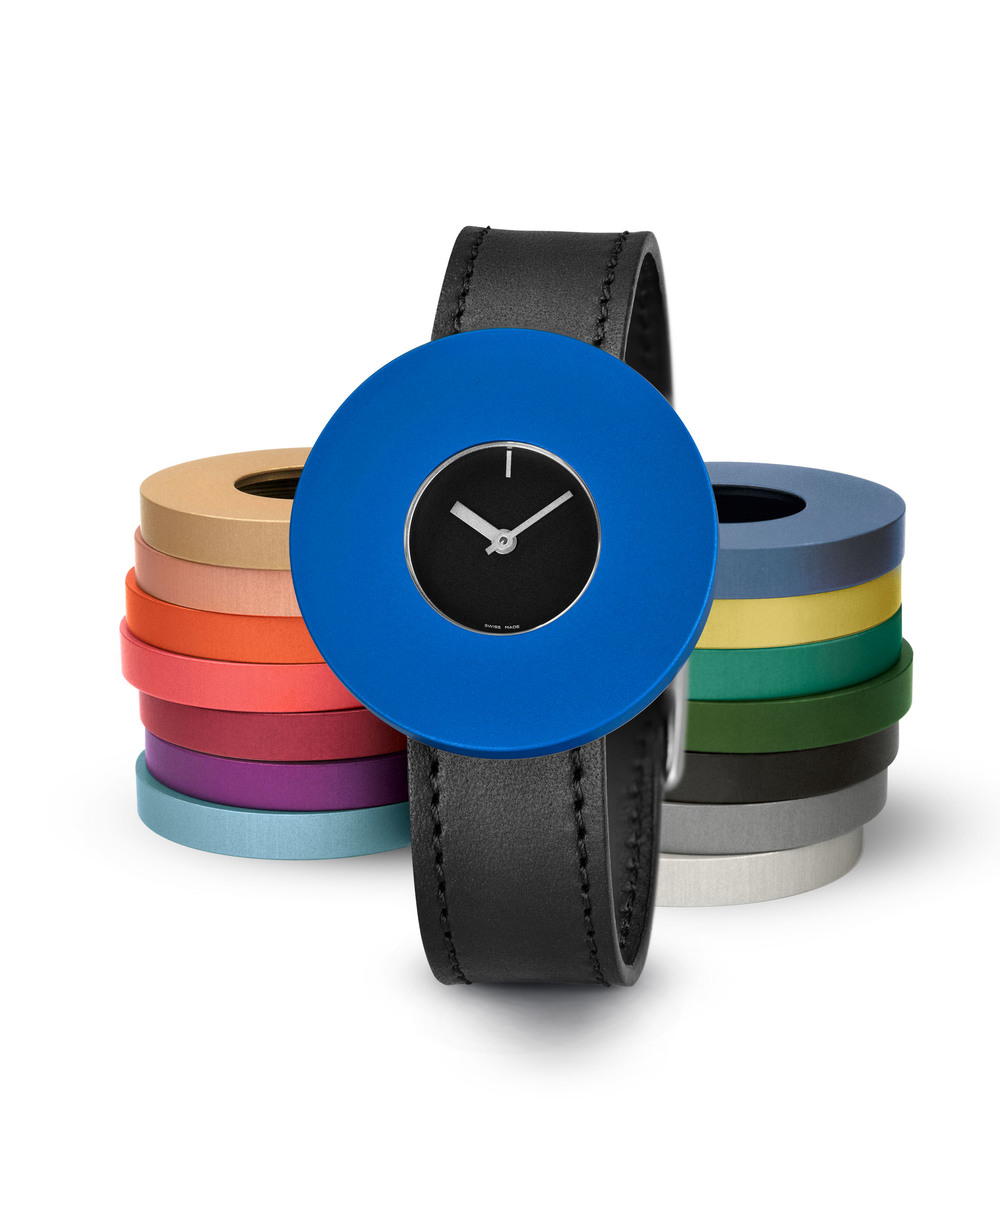 Junod-Vignelli MV Dot black_dial blue_ring leather_band-small.JPG